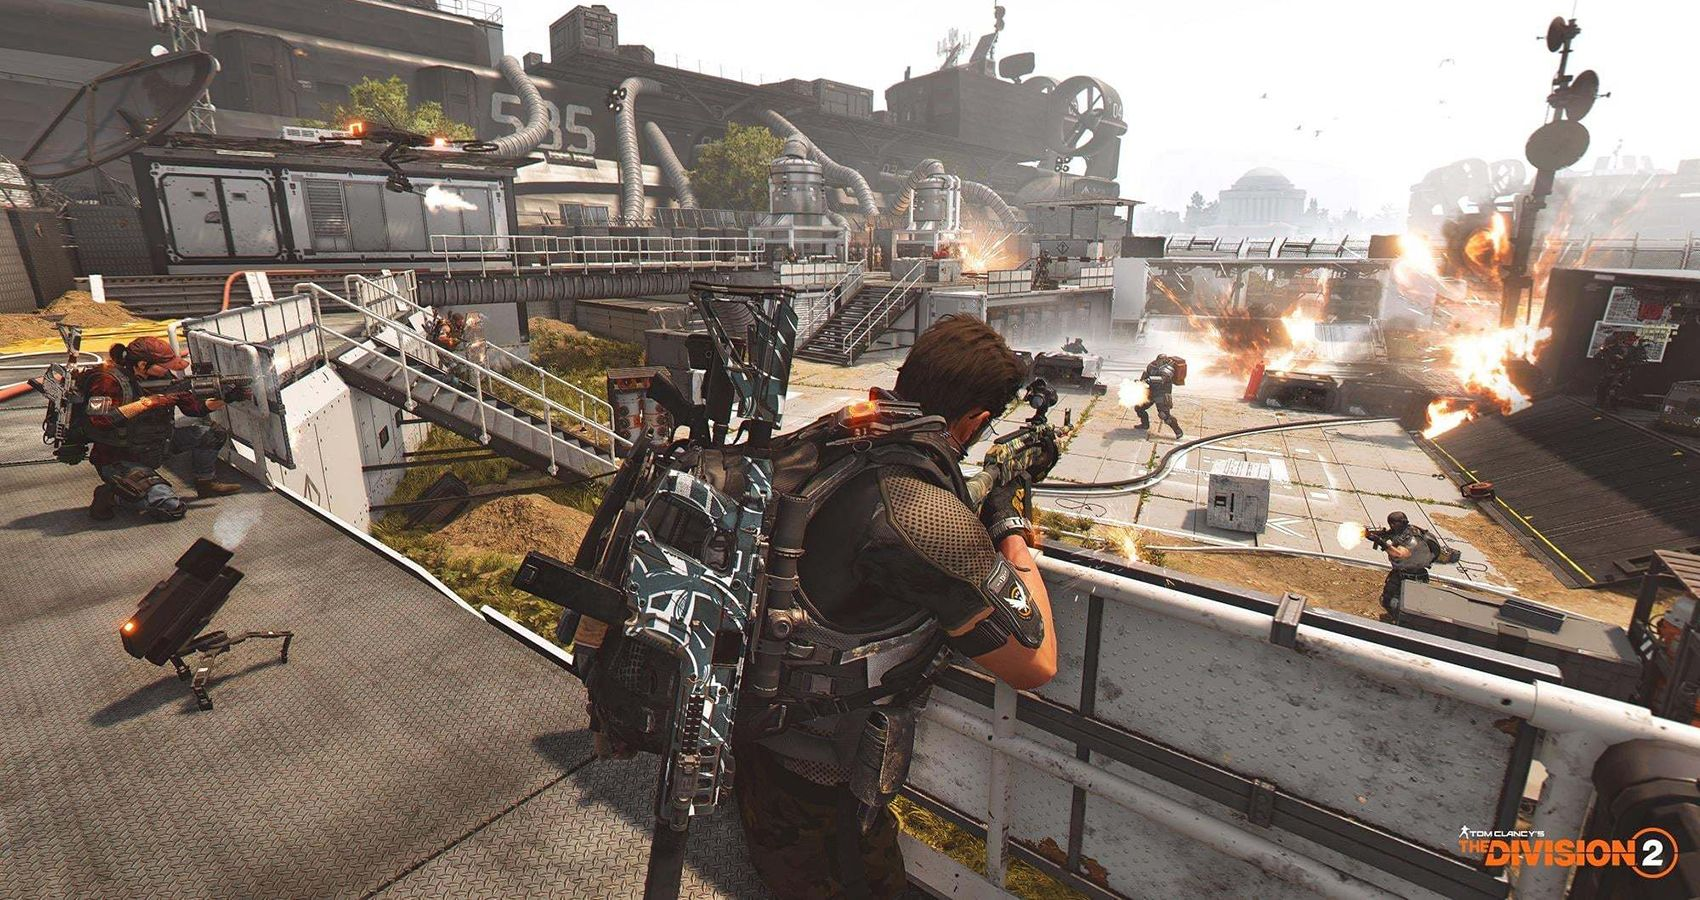 10 Tips For Beating Division 2's Brutal Raid Operation Dark Hours